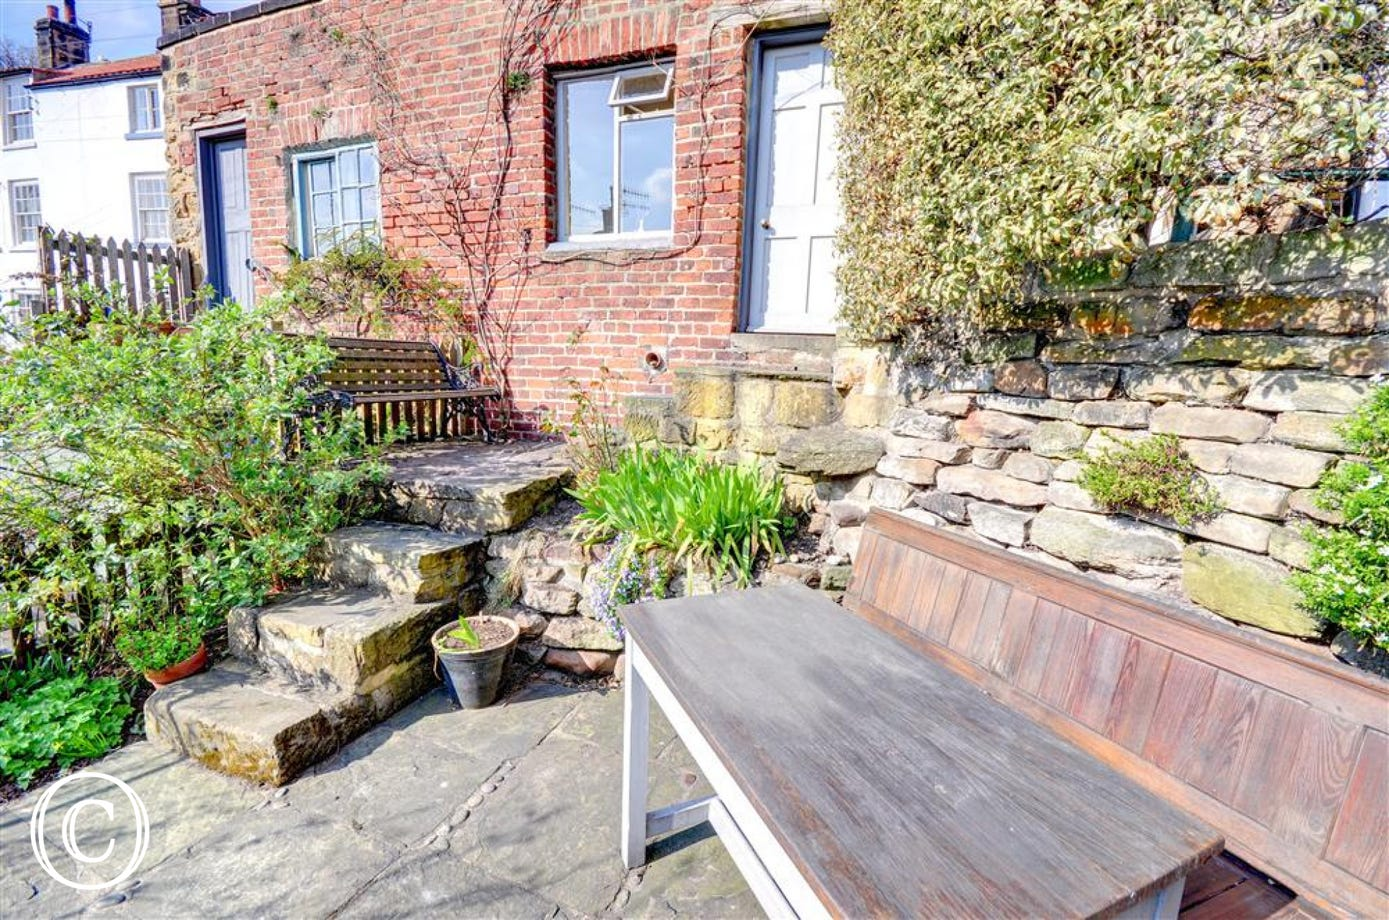 There is also a suntrap Patio area with outside seating.